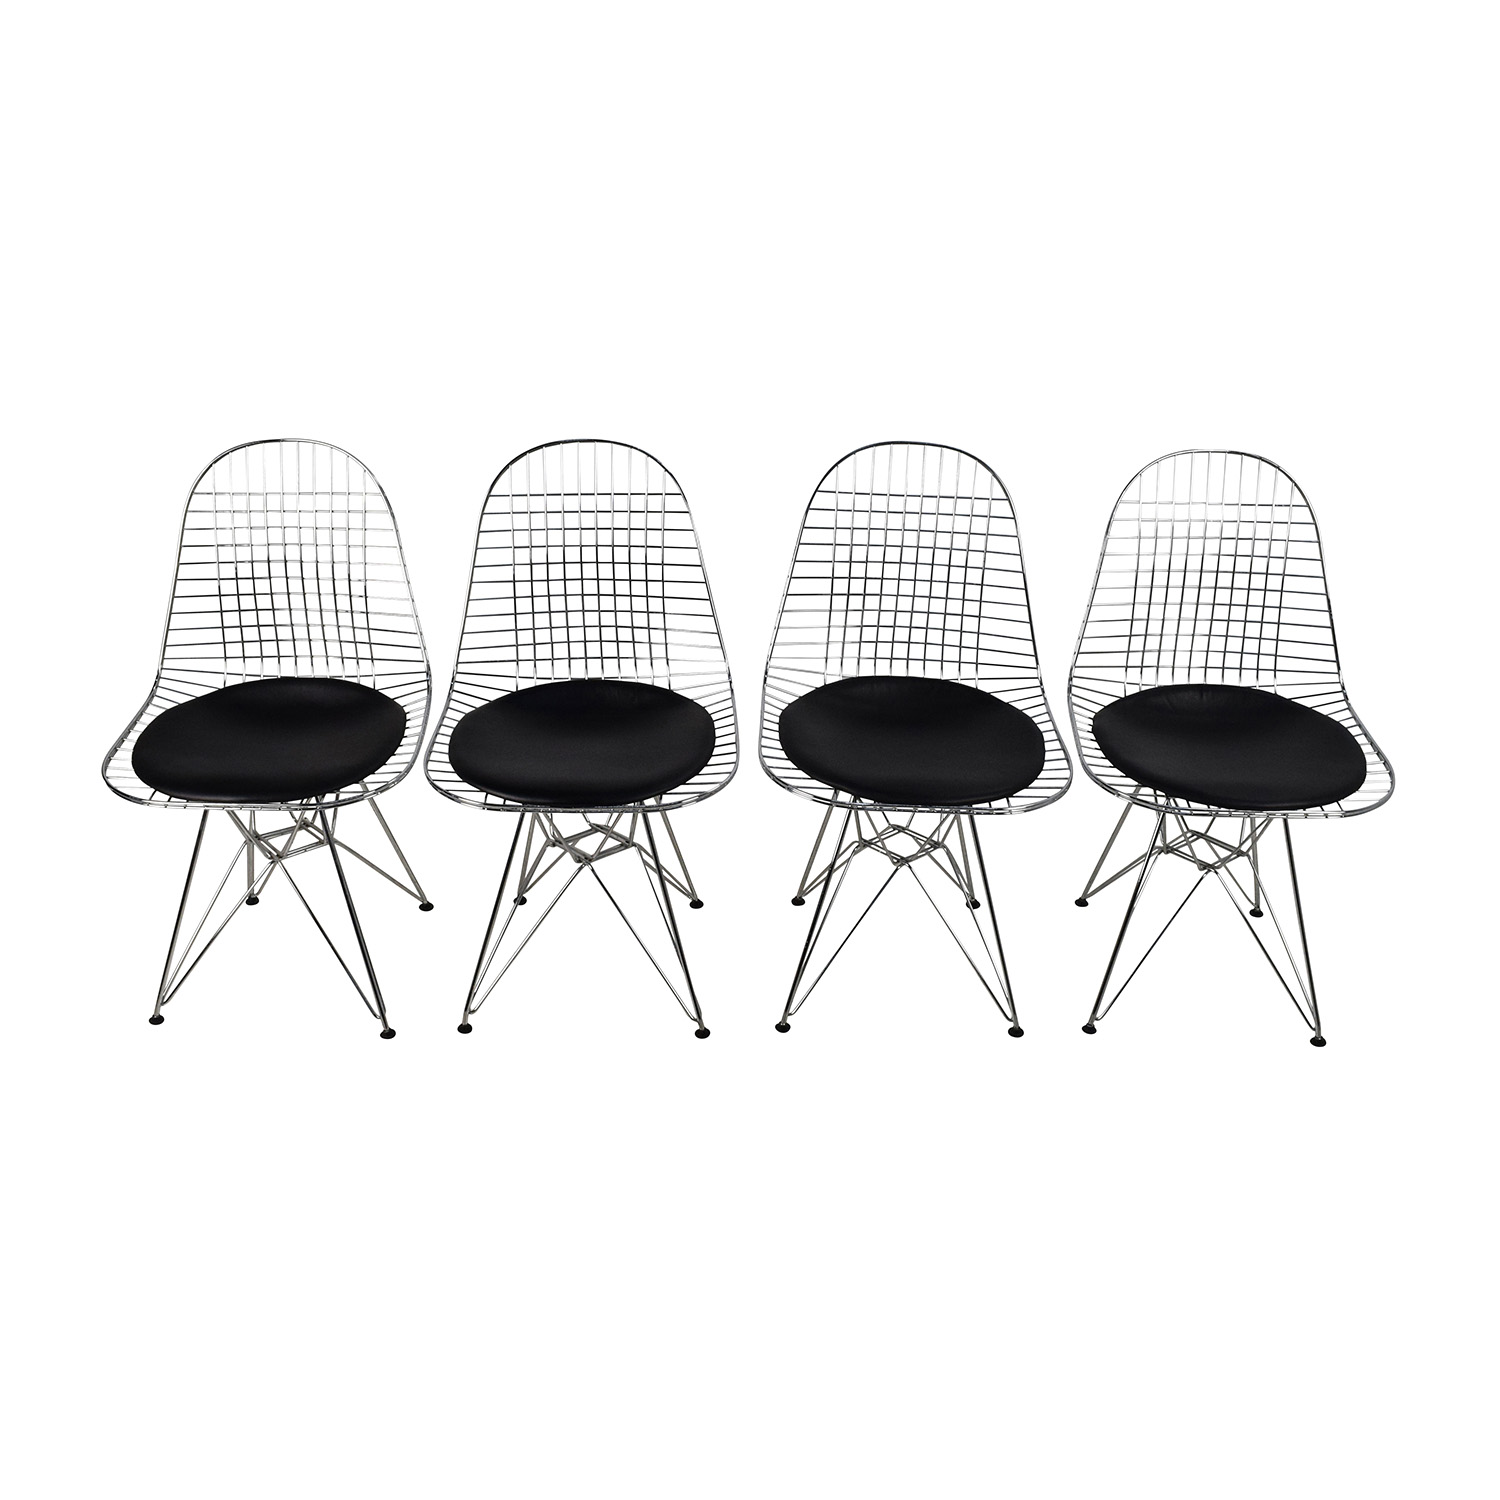 Herman Miller Herman Miller Eames Wire Chair Set with Black Leather Seats second hand